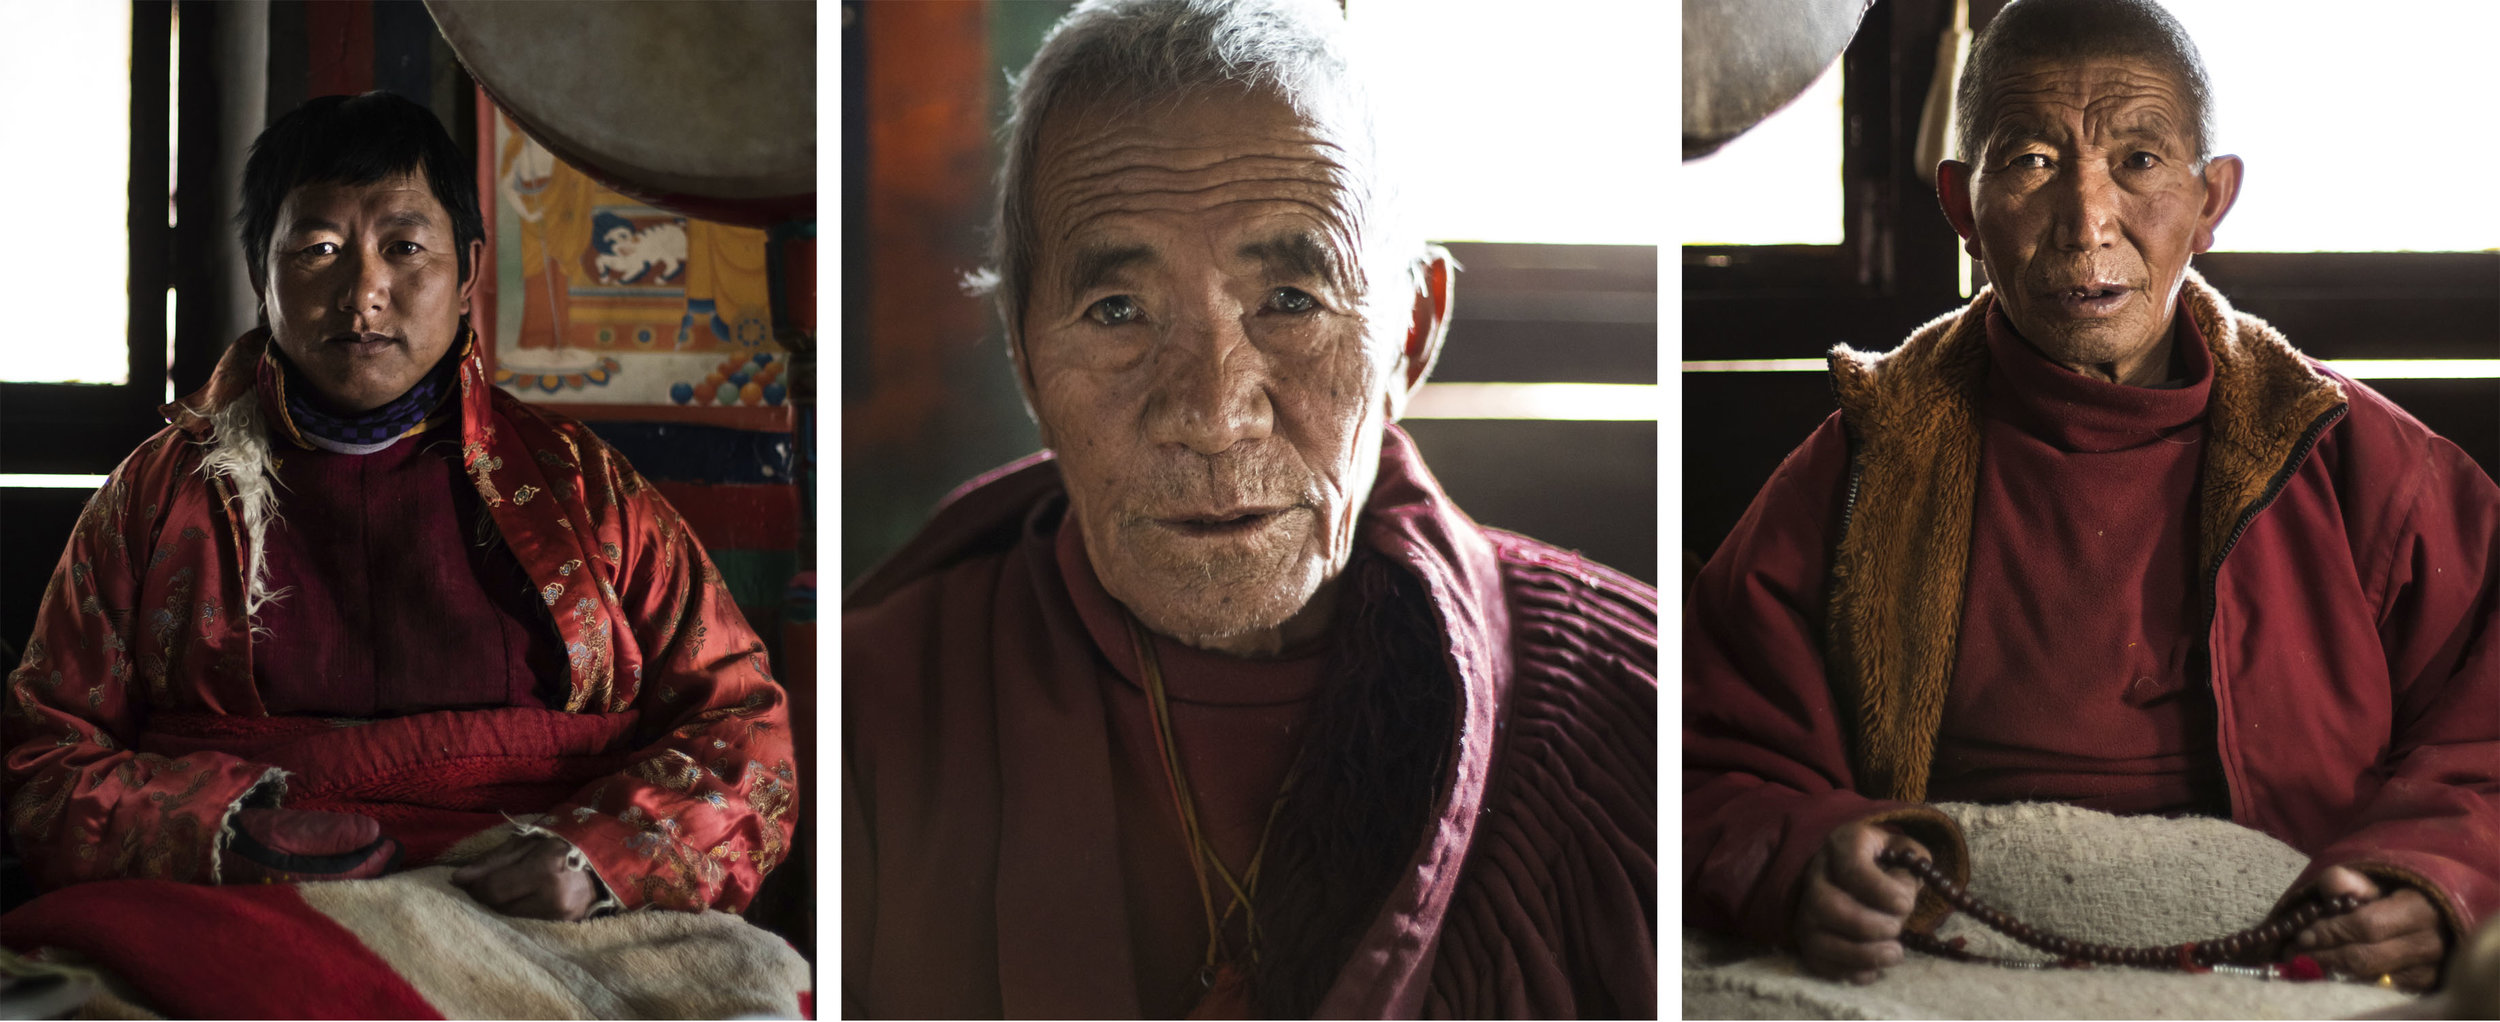 12 Mustang Nyphu Monks Portraits